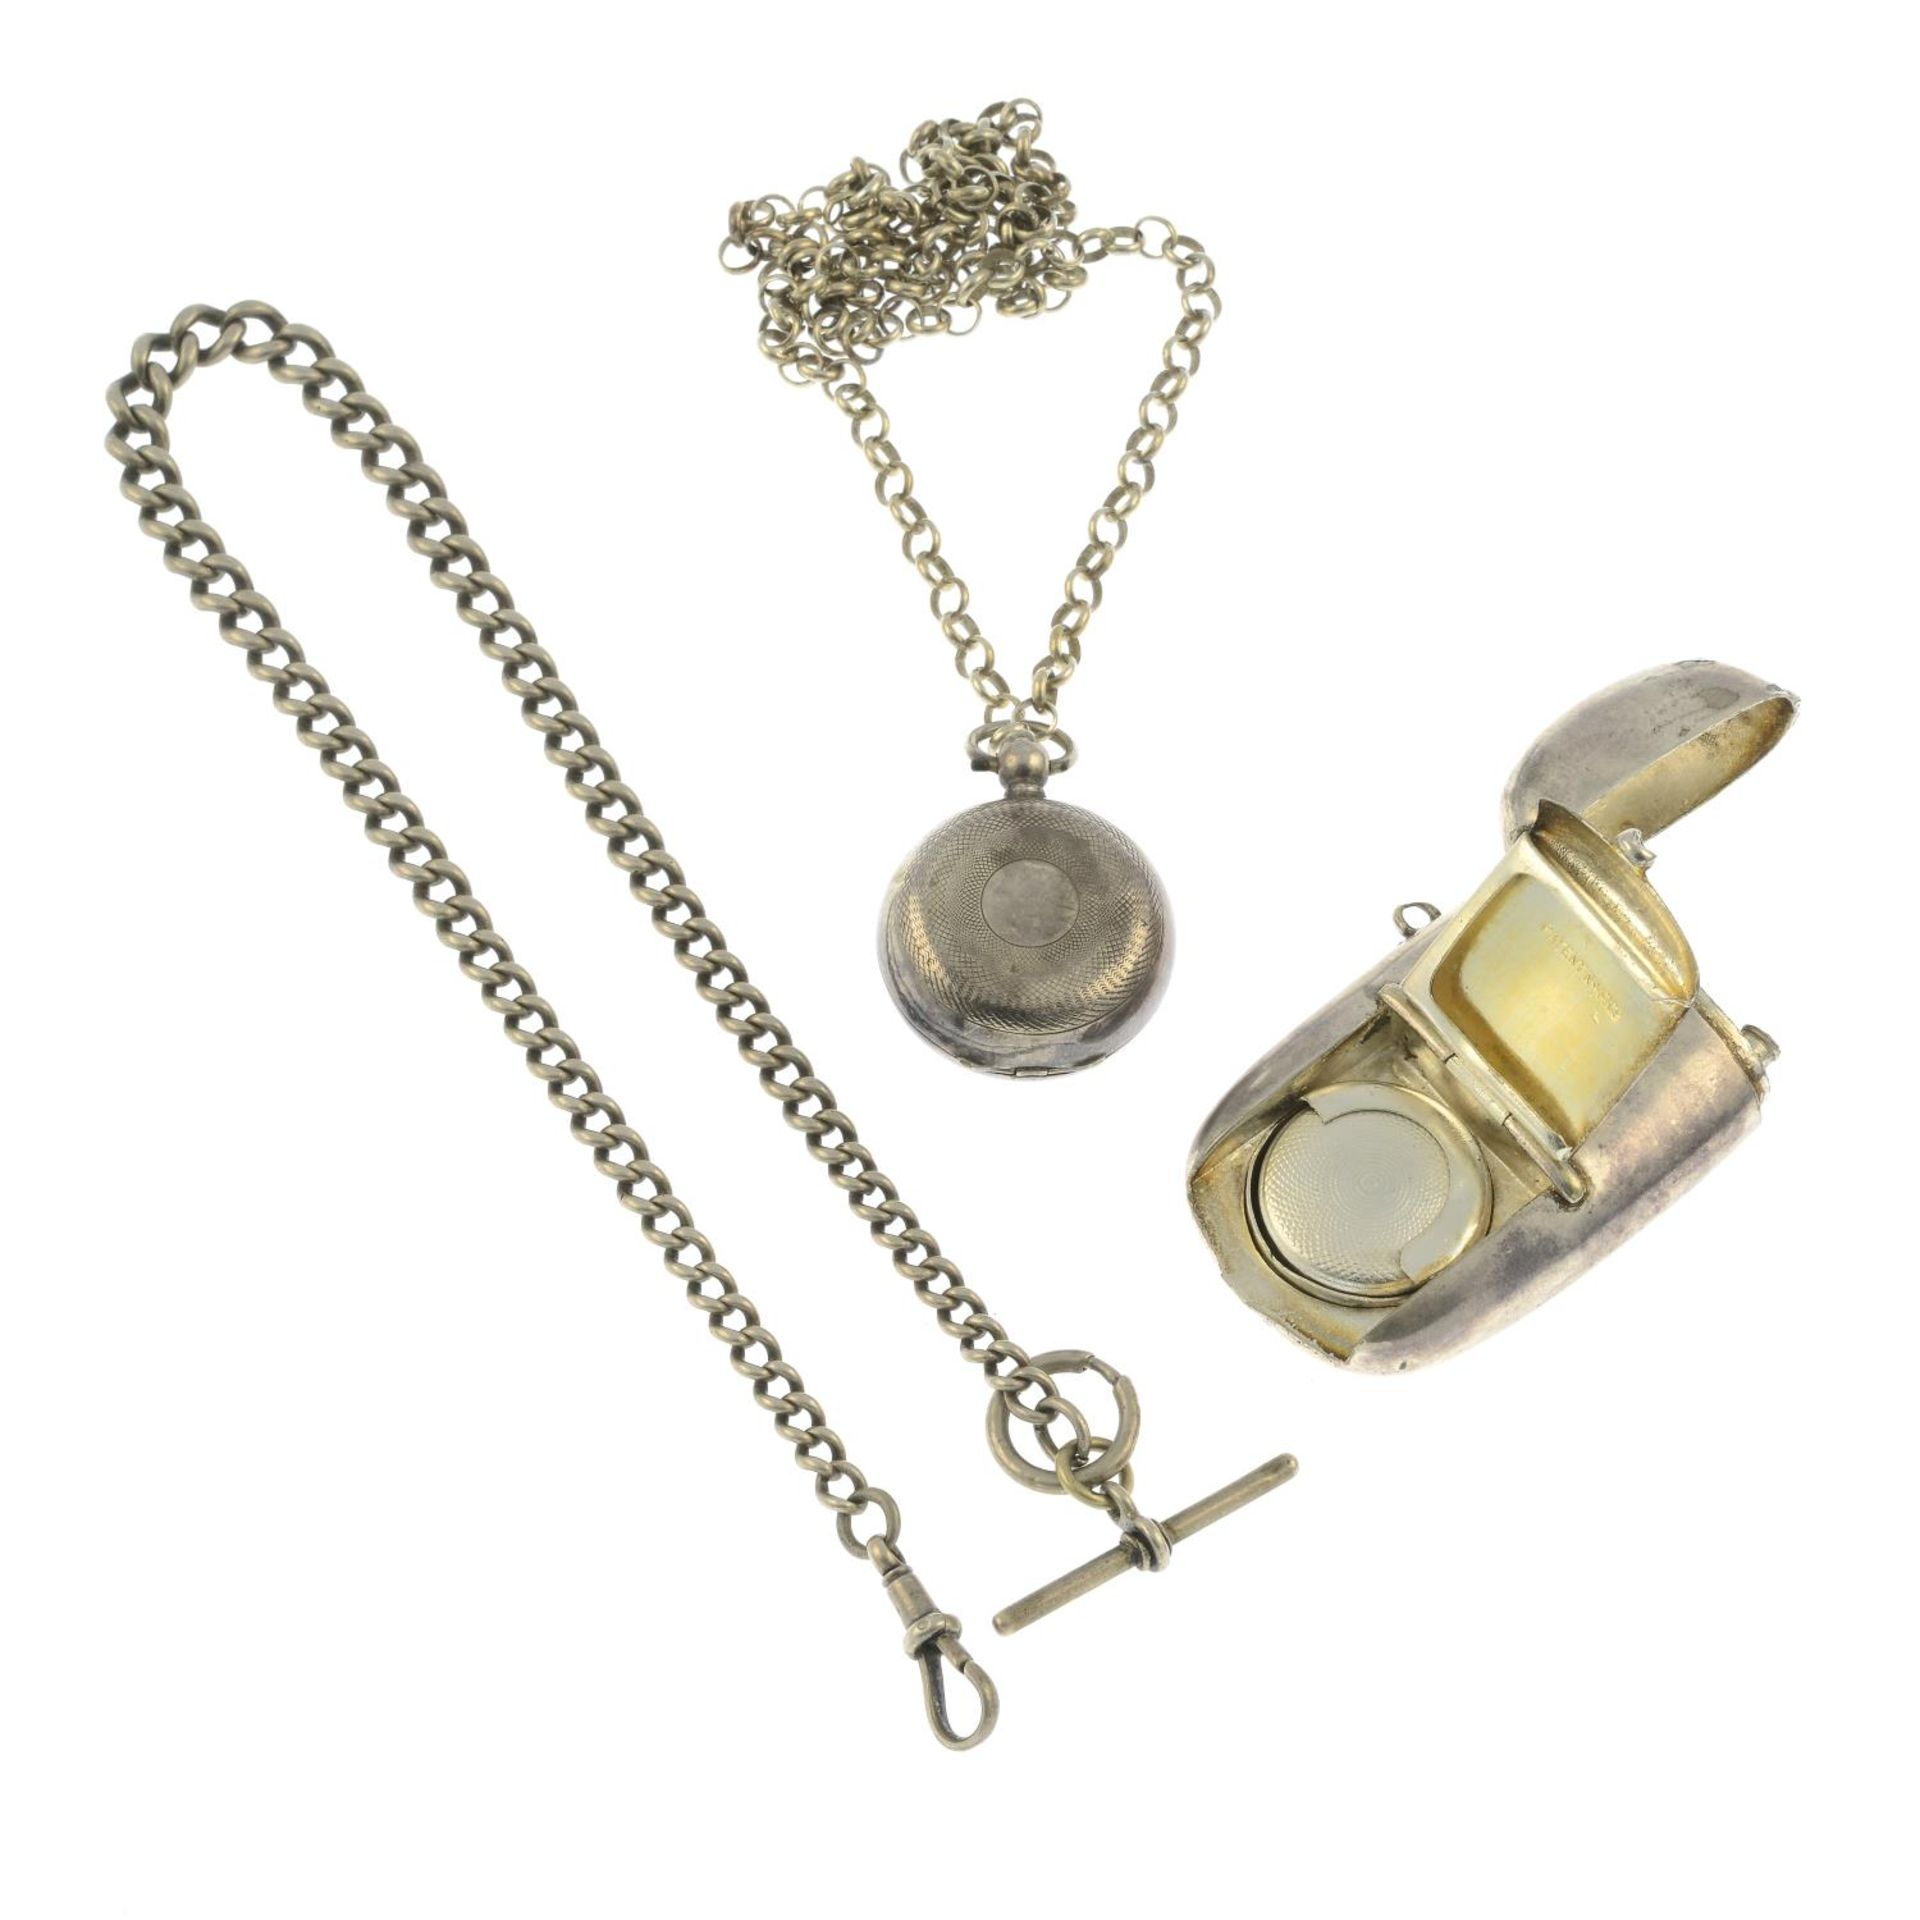 An Edwardian silver sovereign case with chain, - Image 2 of 2